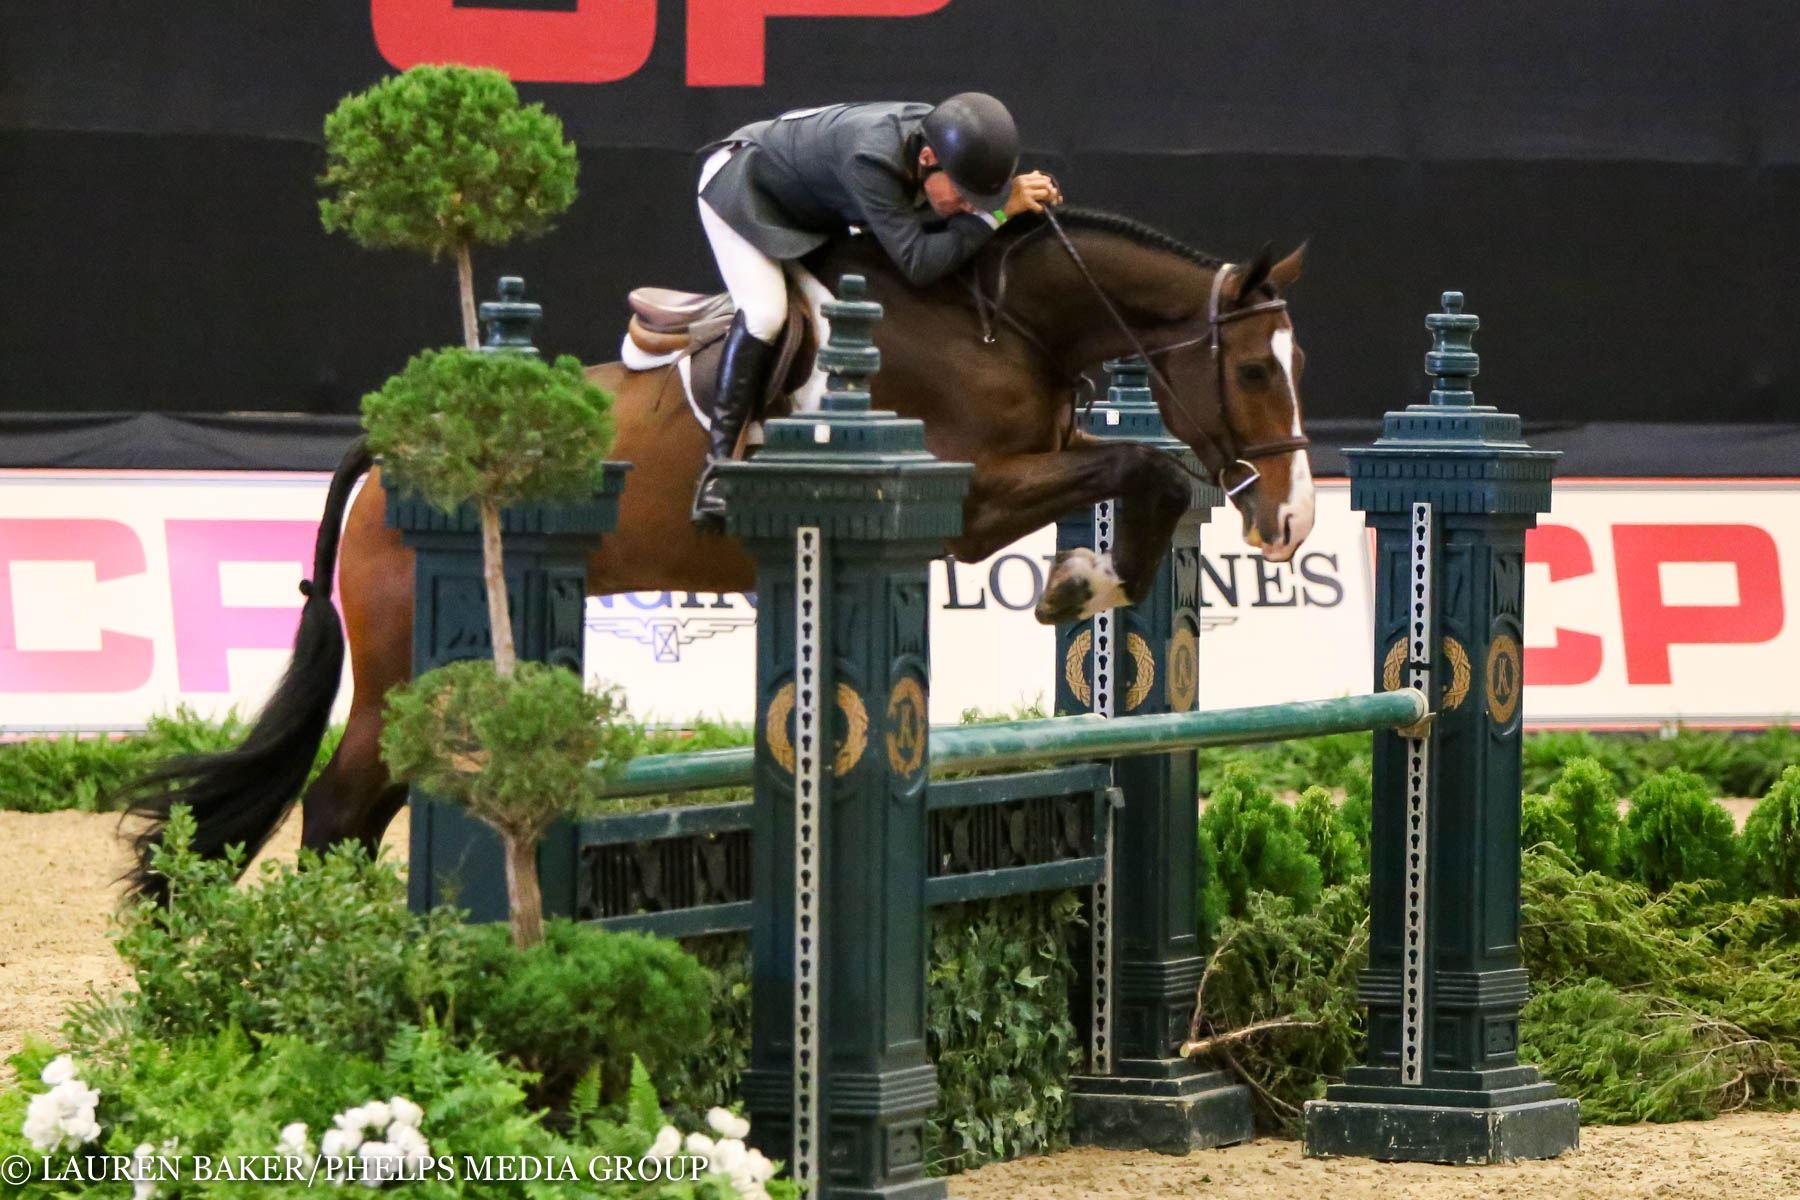 John French and Skyhawk. ©Lauren Baker/Phelps Media